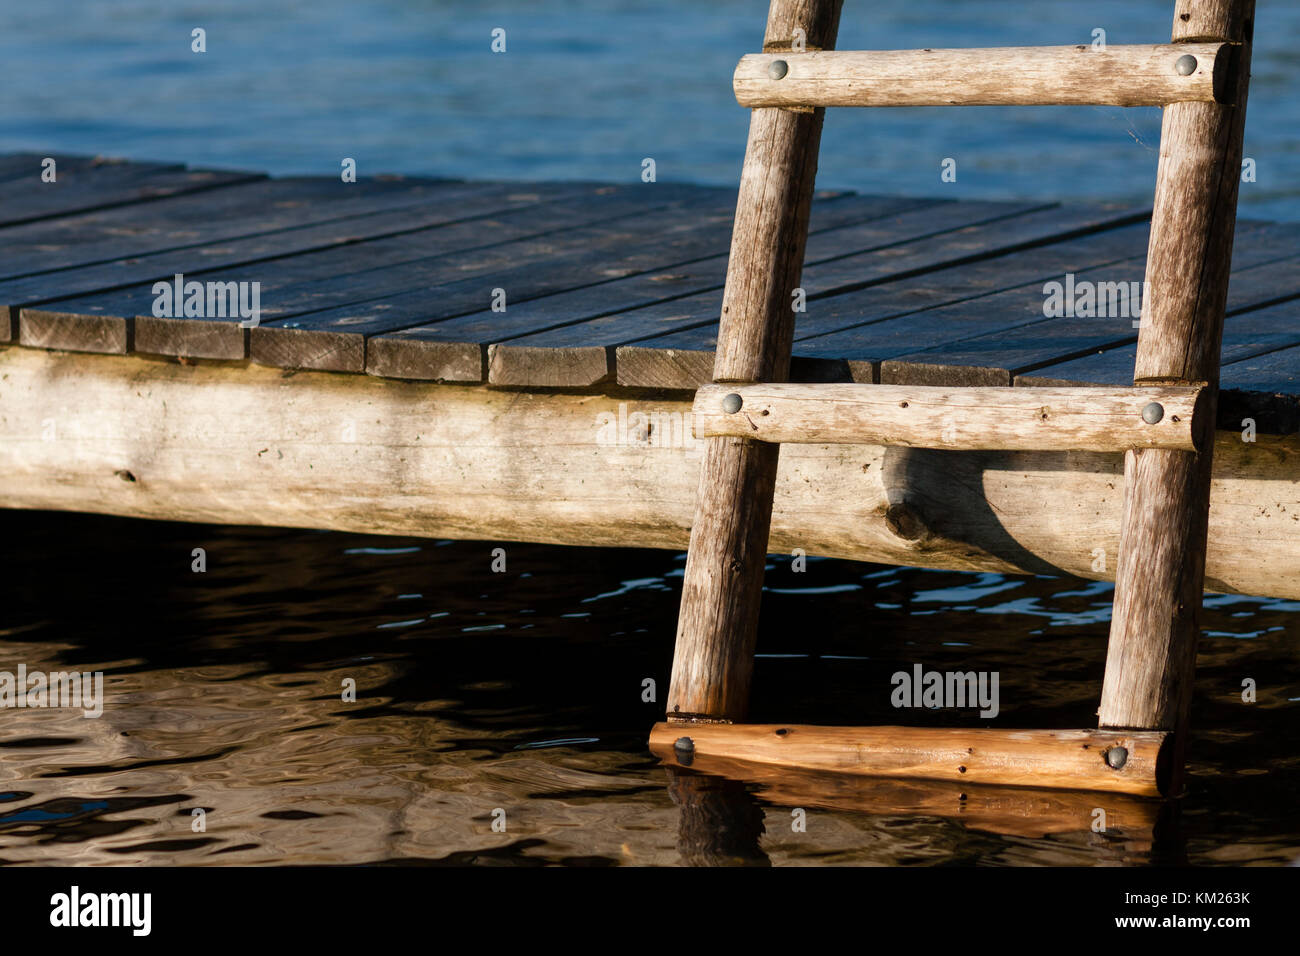 Wooden ladder and a lakeside dock in cottage country - Stock Image